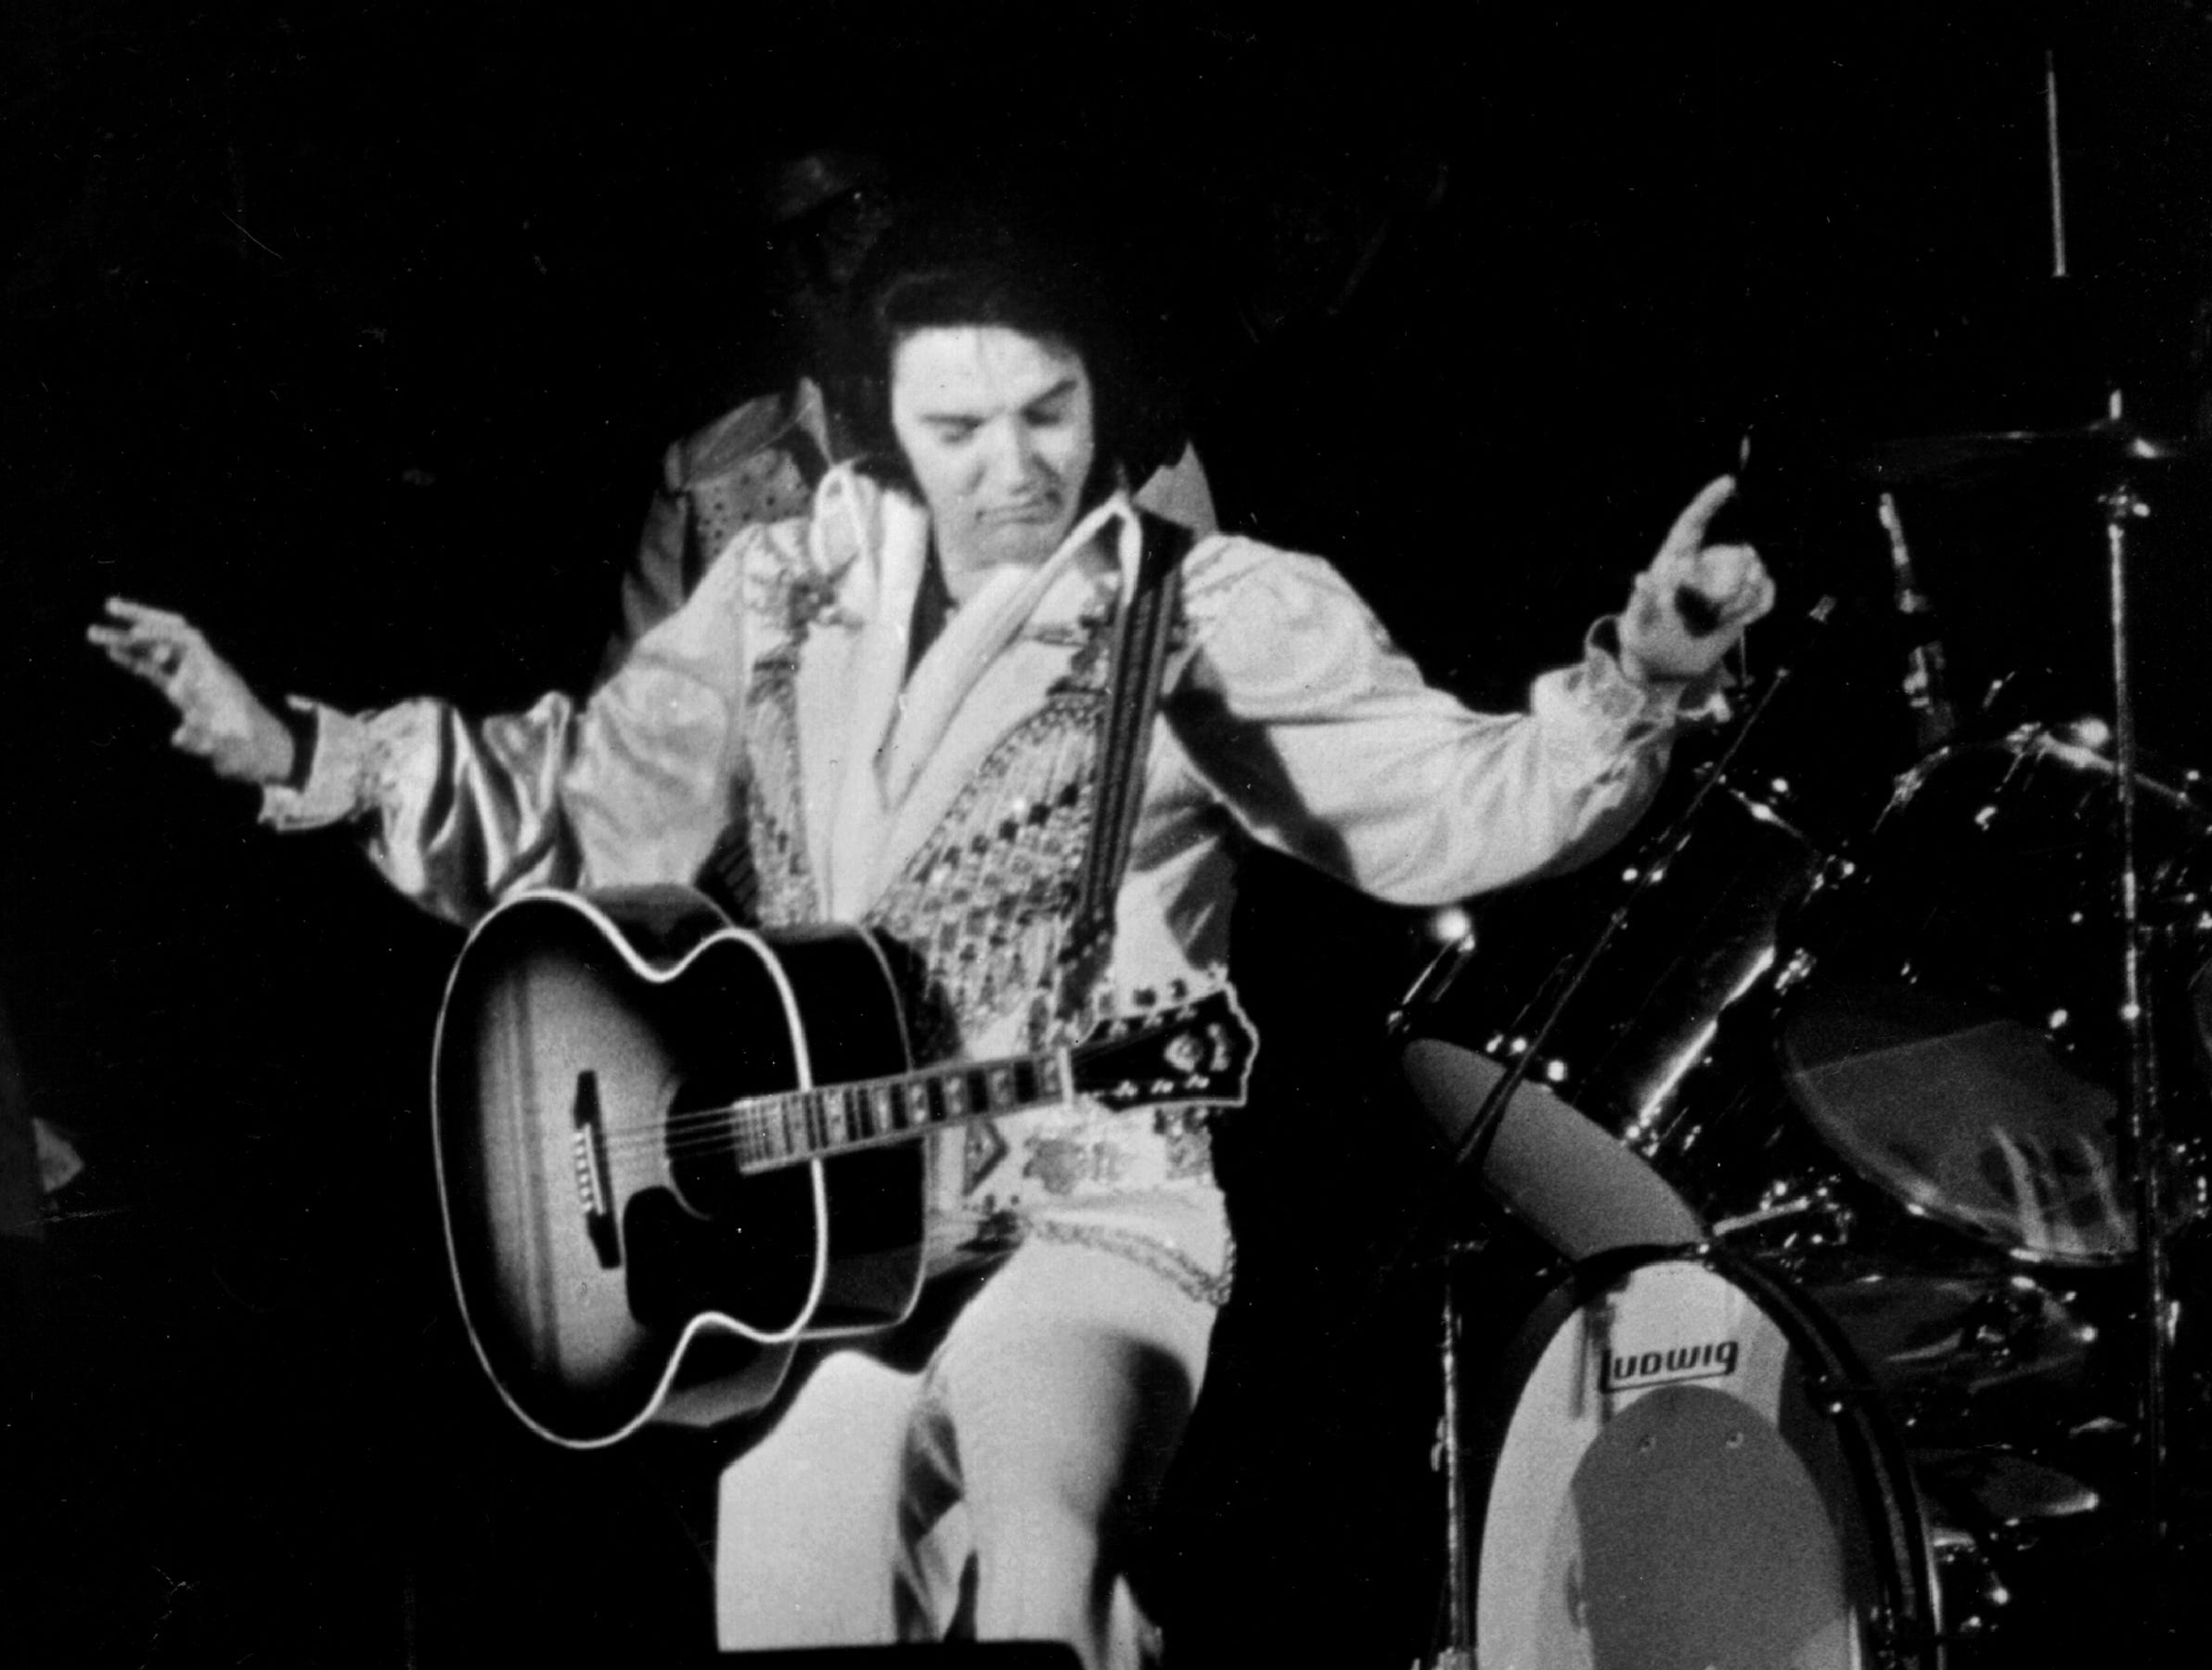 "July 5, 1976 - Elvis Presley performs what would be his last Memphis concert July 5, 1976 before a crowd of 12,000 at Mid-South Coliseum. Exactly twenty-two years earlier (7/5/54), Elvis recorded ""That's All Right"" at Sam Phillips' little studio at 706 Union. Introducing the song, he said: ""I've had some people say - well, you can't do that song anymore - well, you, by God, just watch me."" (By Barney Sellers/ The Commercial Appeal)"